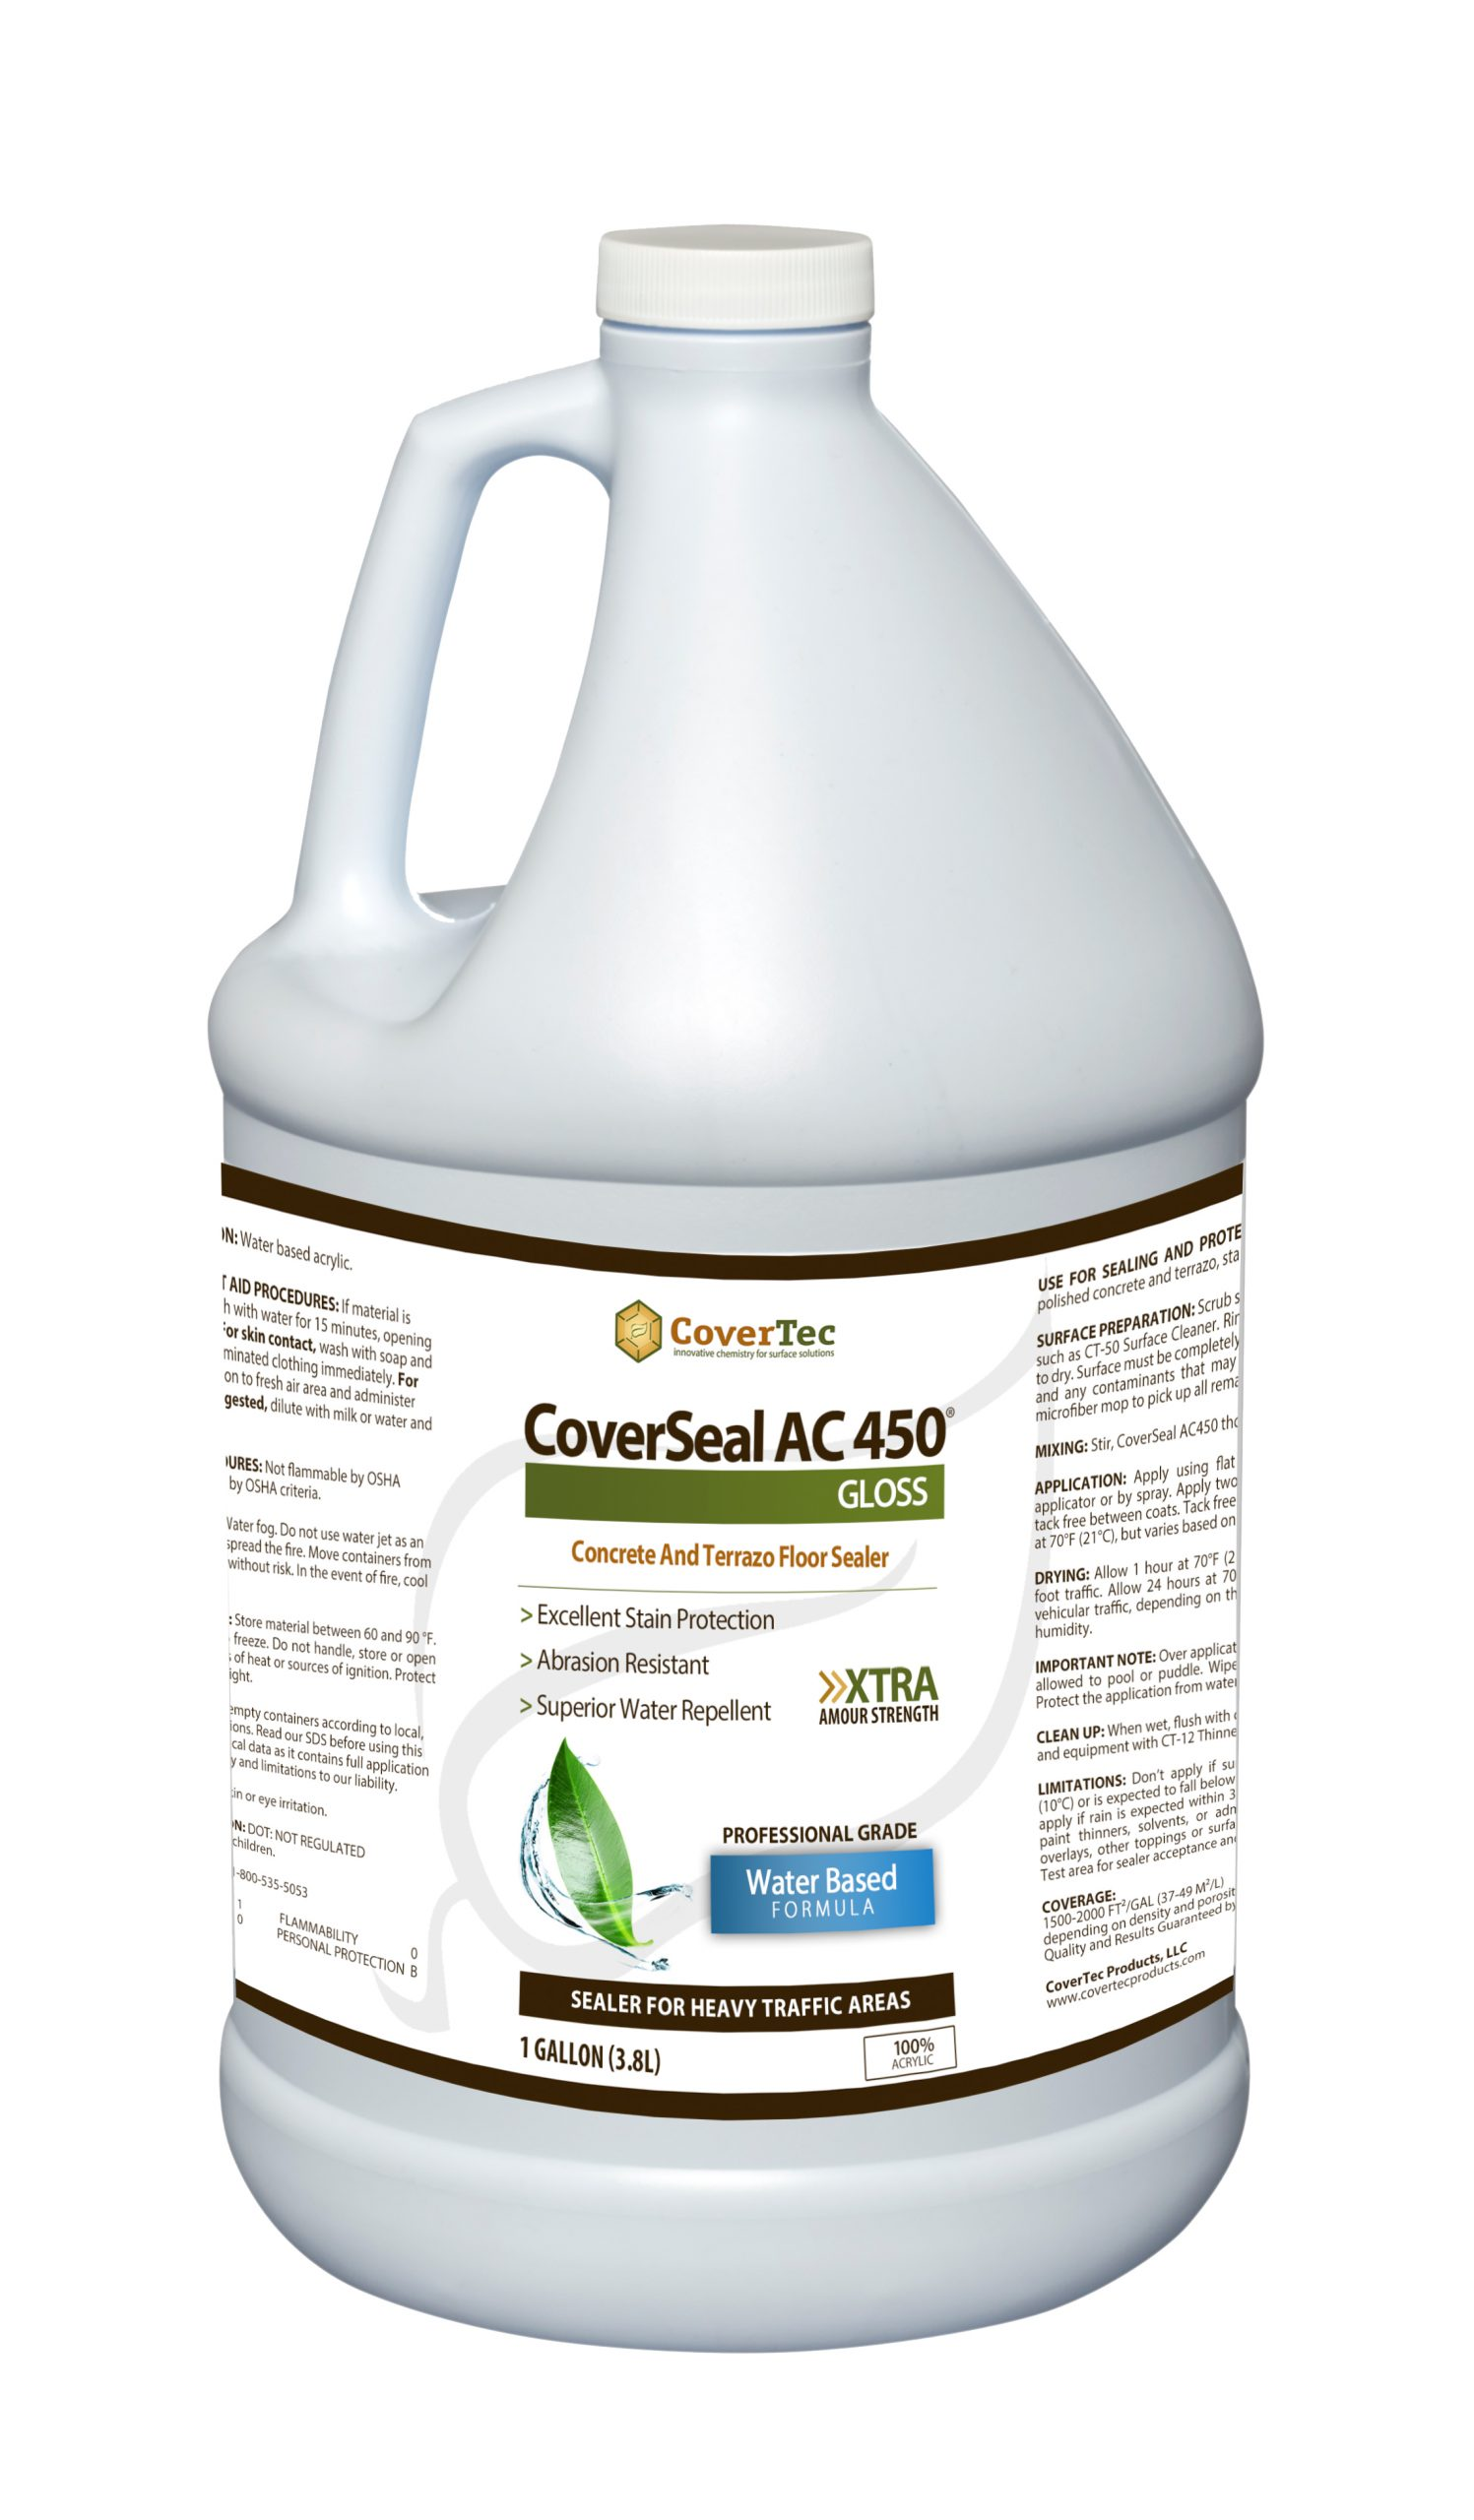 CoverSeal AC450 Stain Resistant WB Acrylic Sealer, Gloss Finish